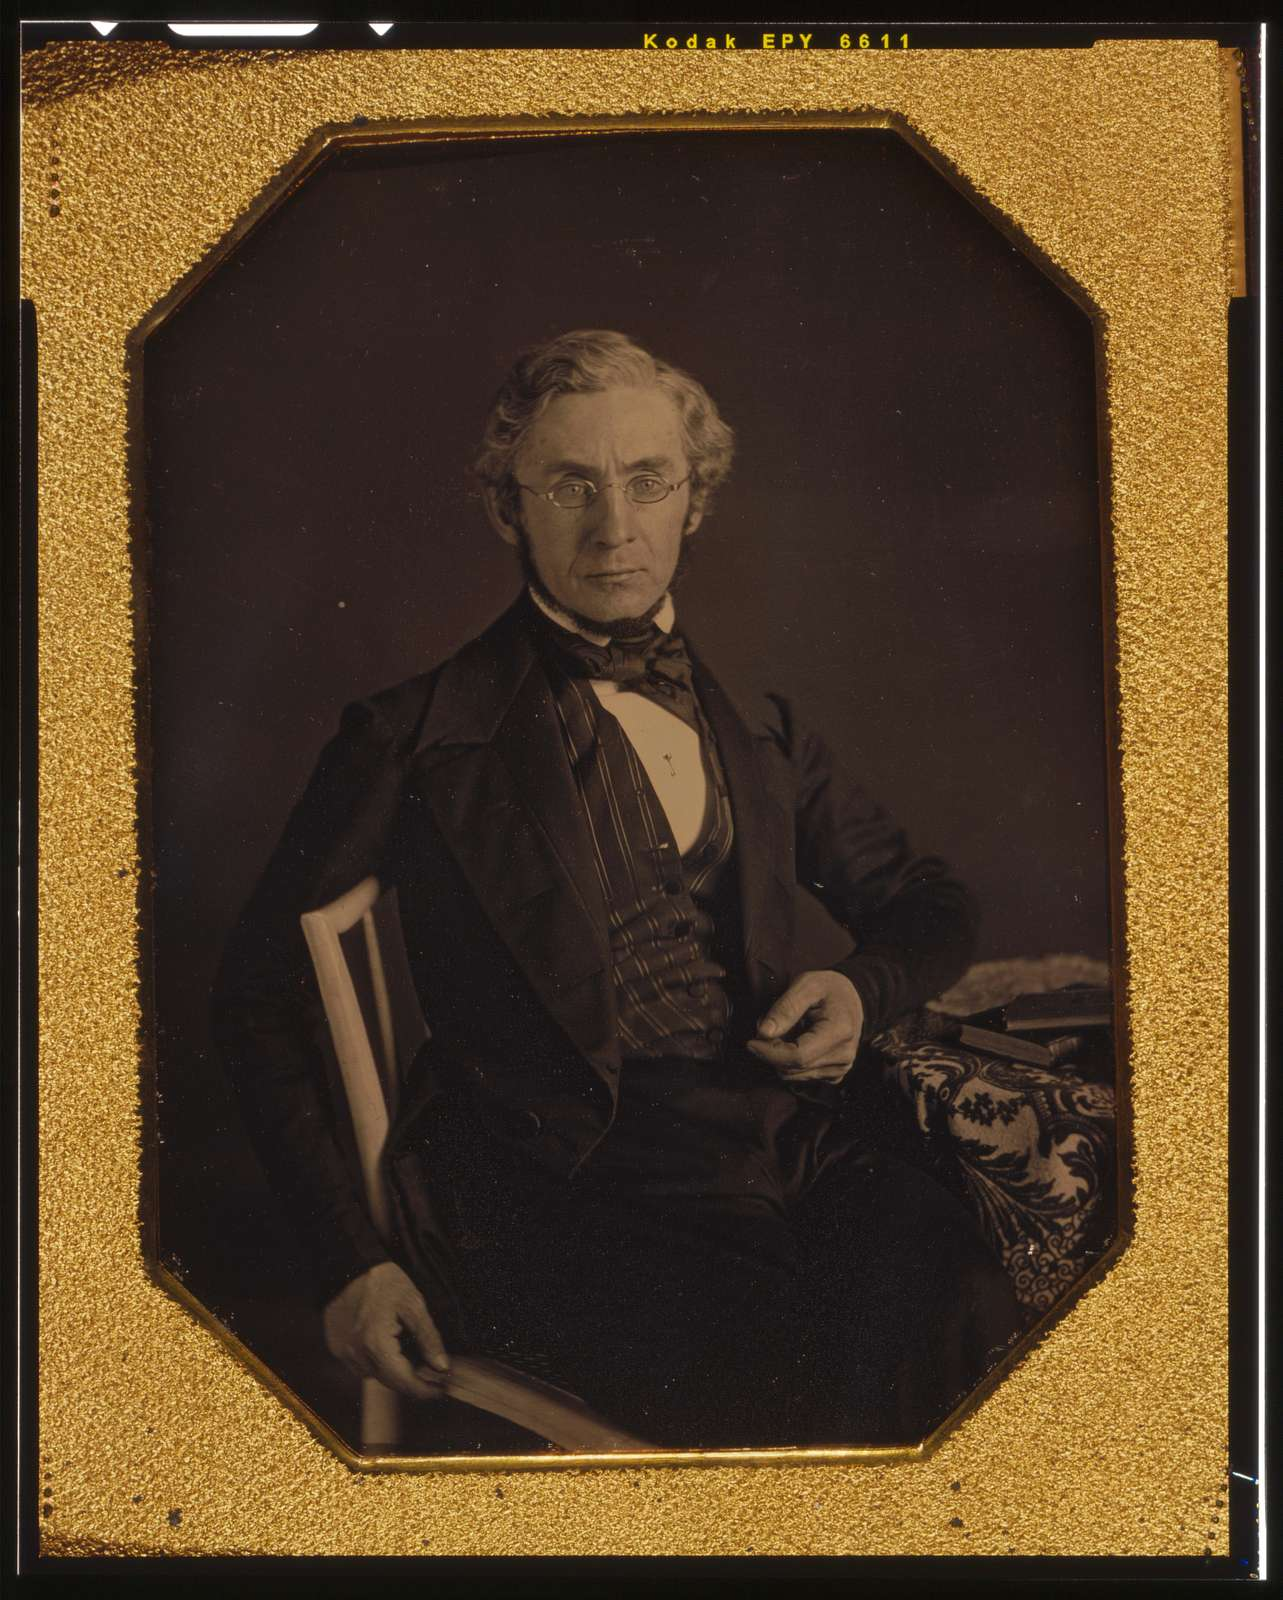 [William Young McAllister, three-quarters length portrait, seated in a chair, arm resting on table with tablecloth]